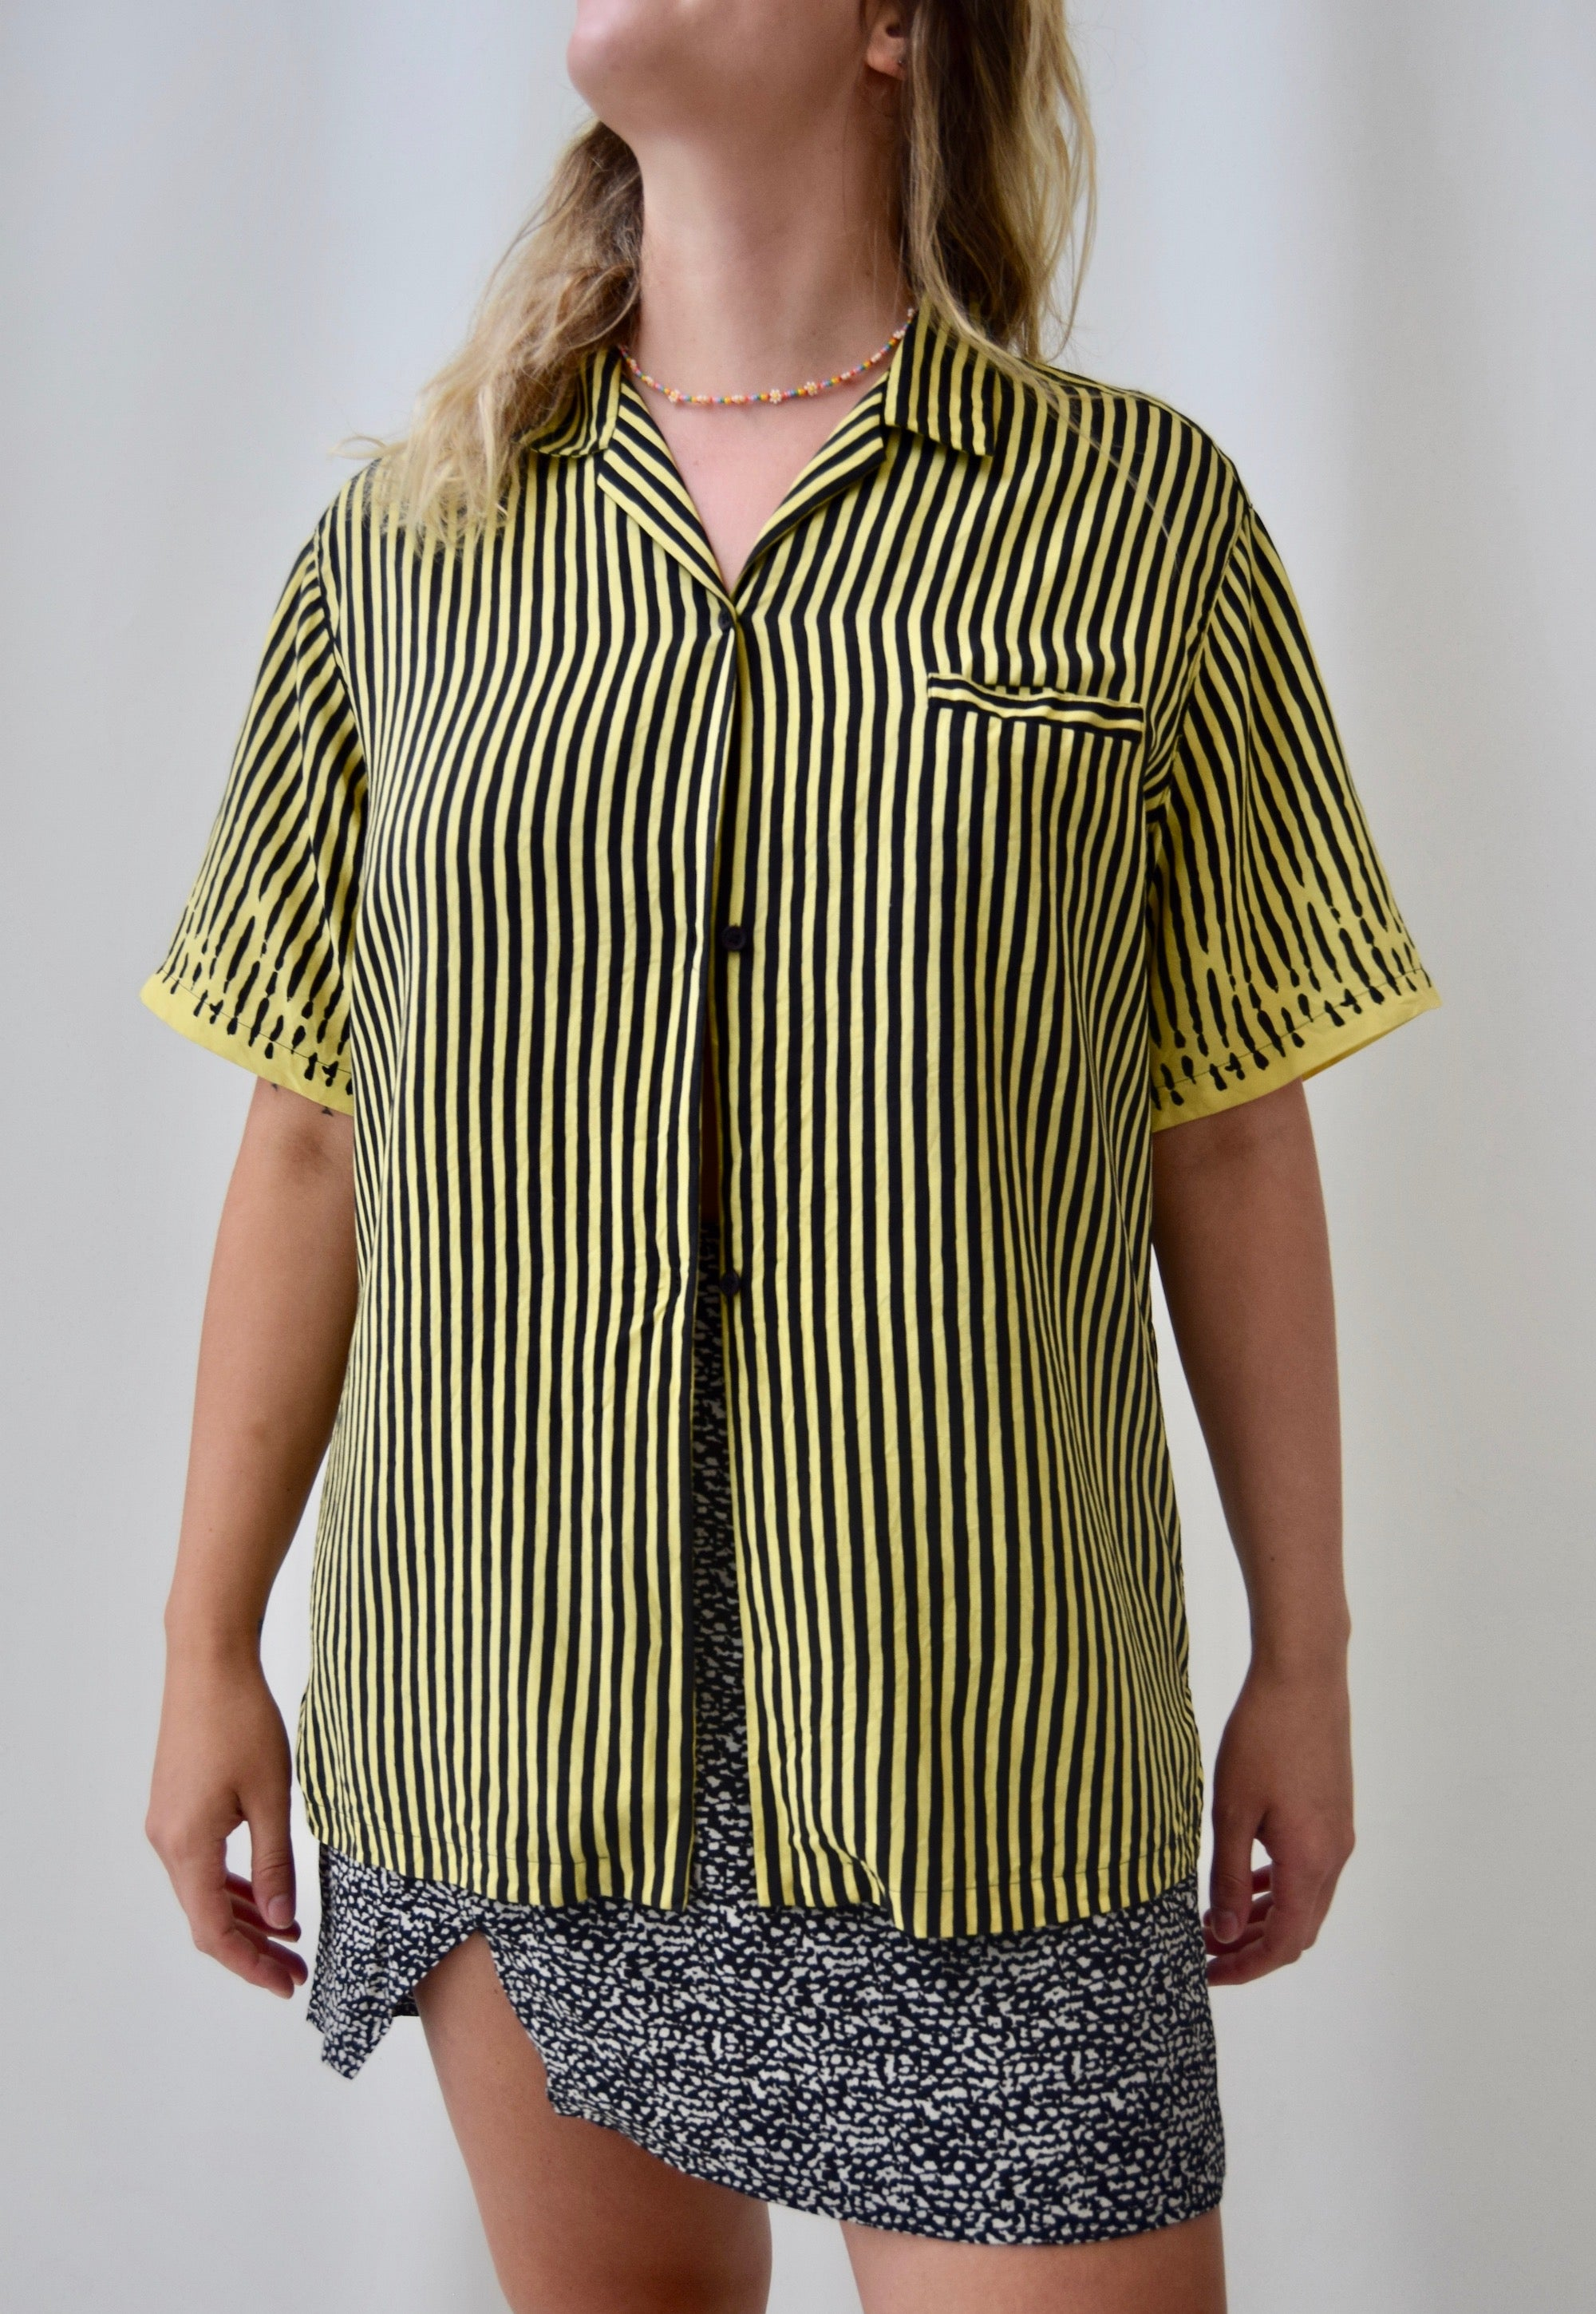 Stephen Sprouse Black and Yellow, Black and Yellow Silk Top